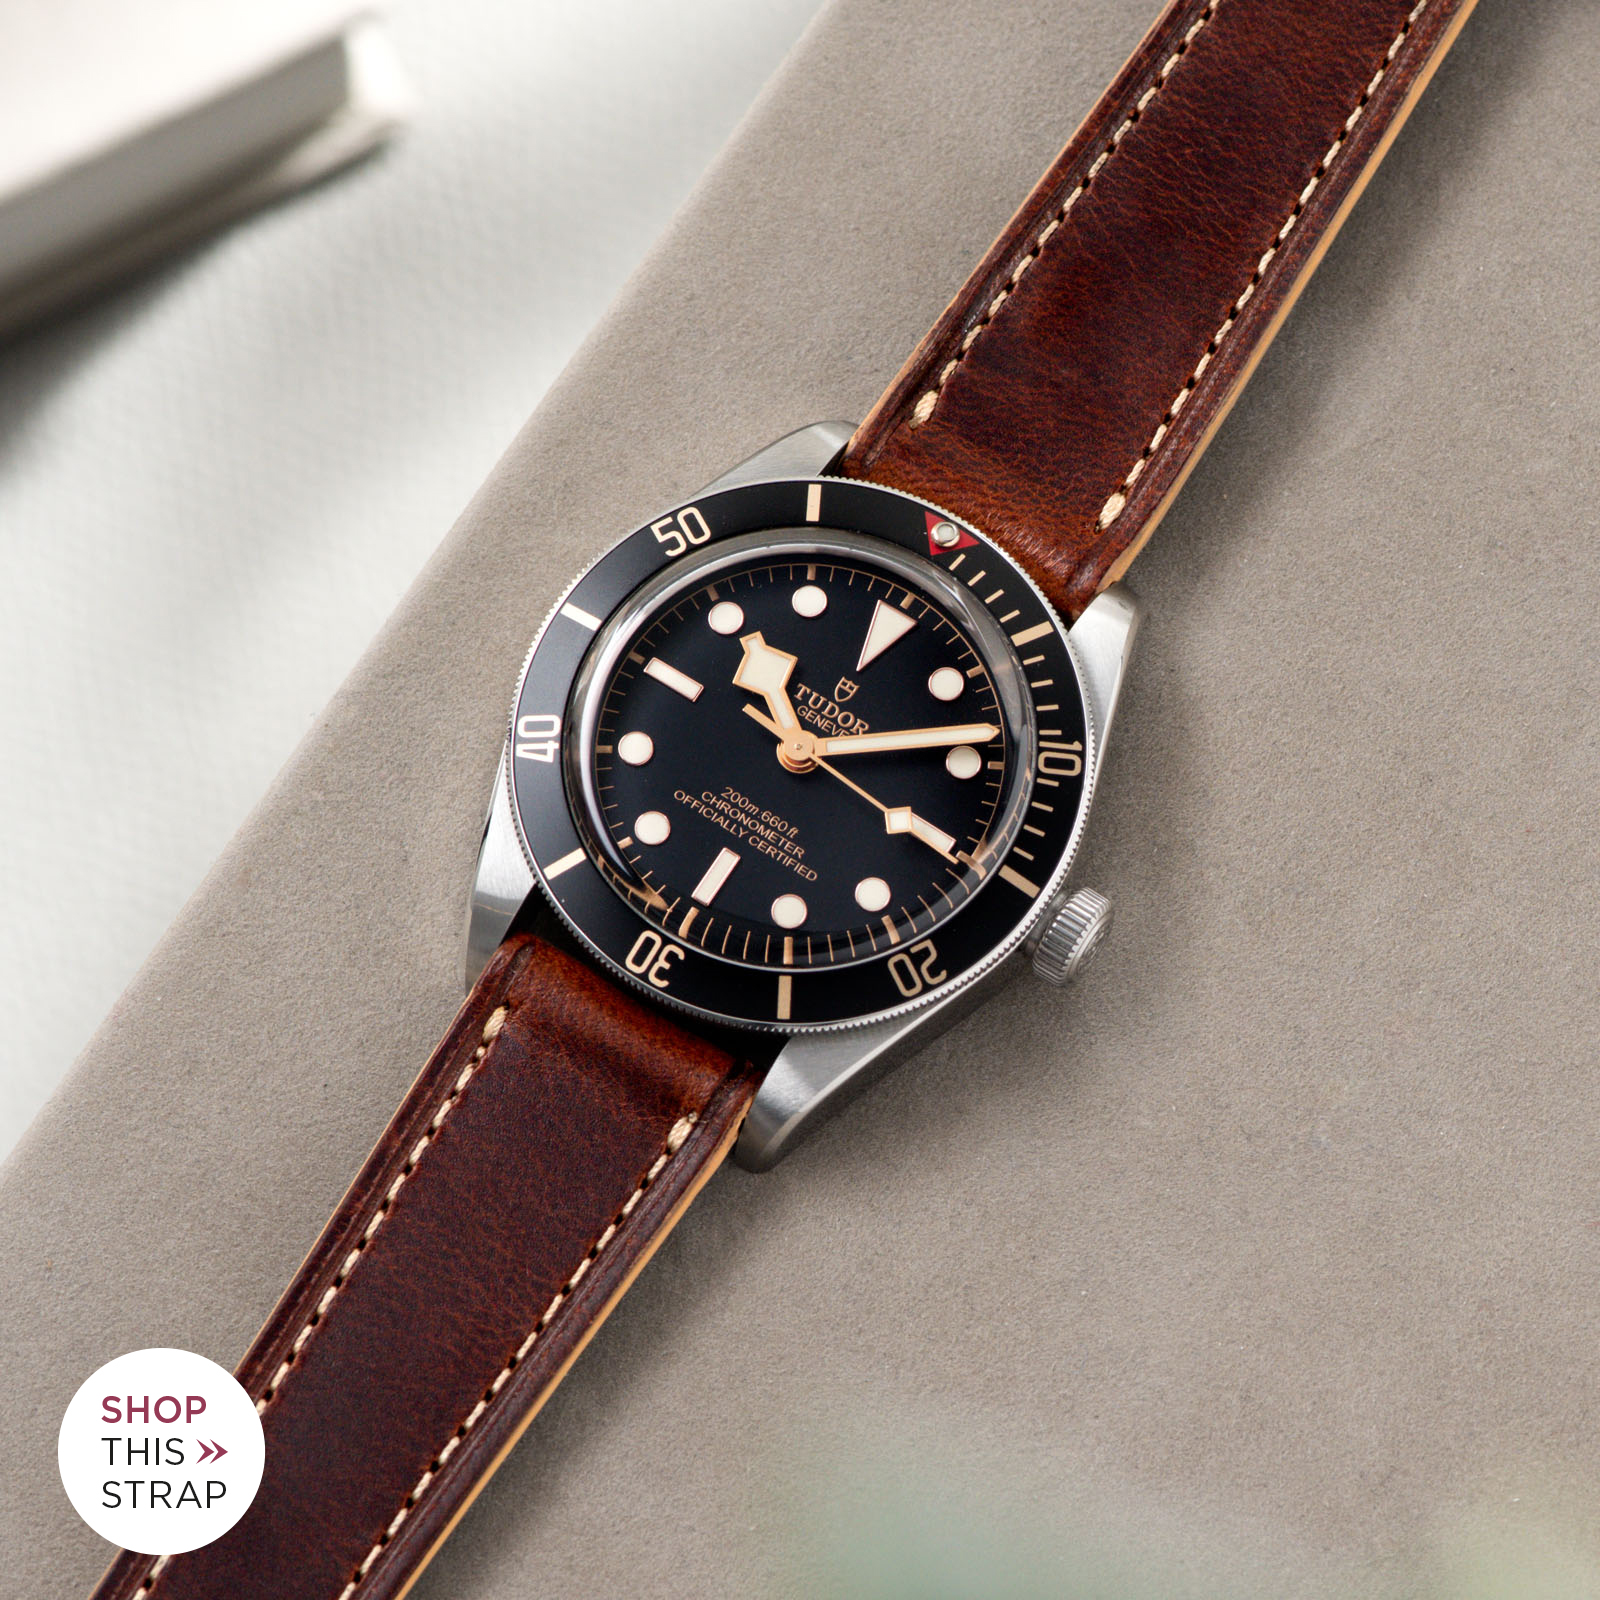 Bulang and Sons_Strap Guide_Siena Brown Retro Leather Watch Strap